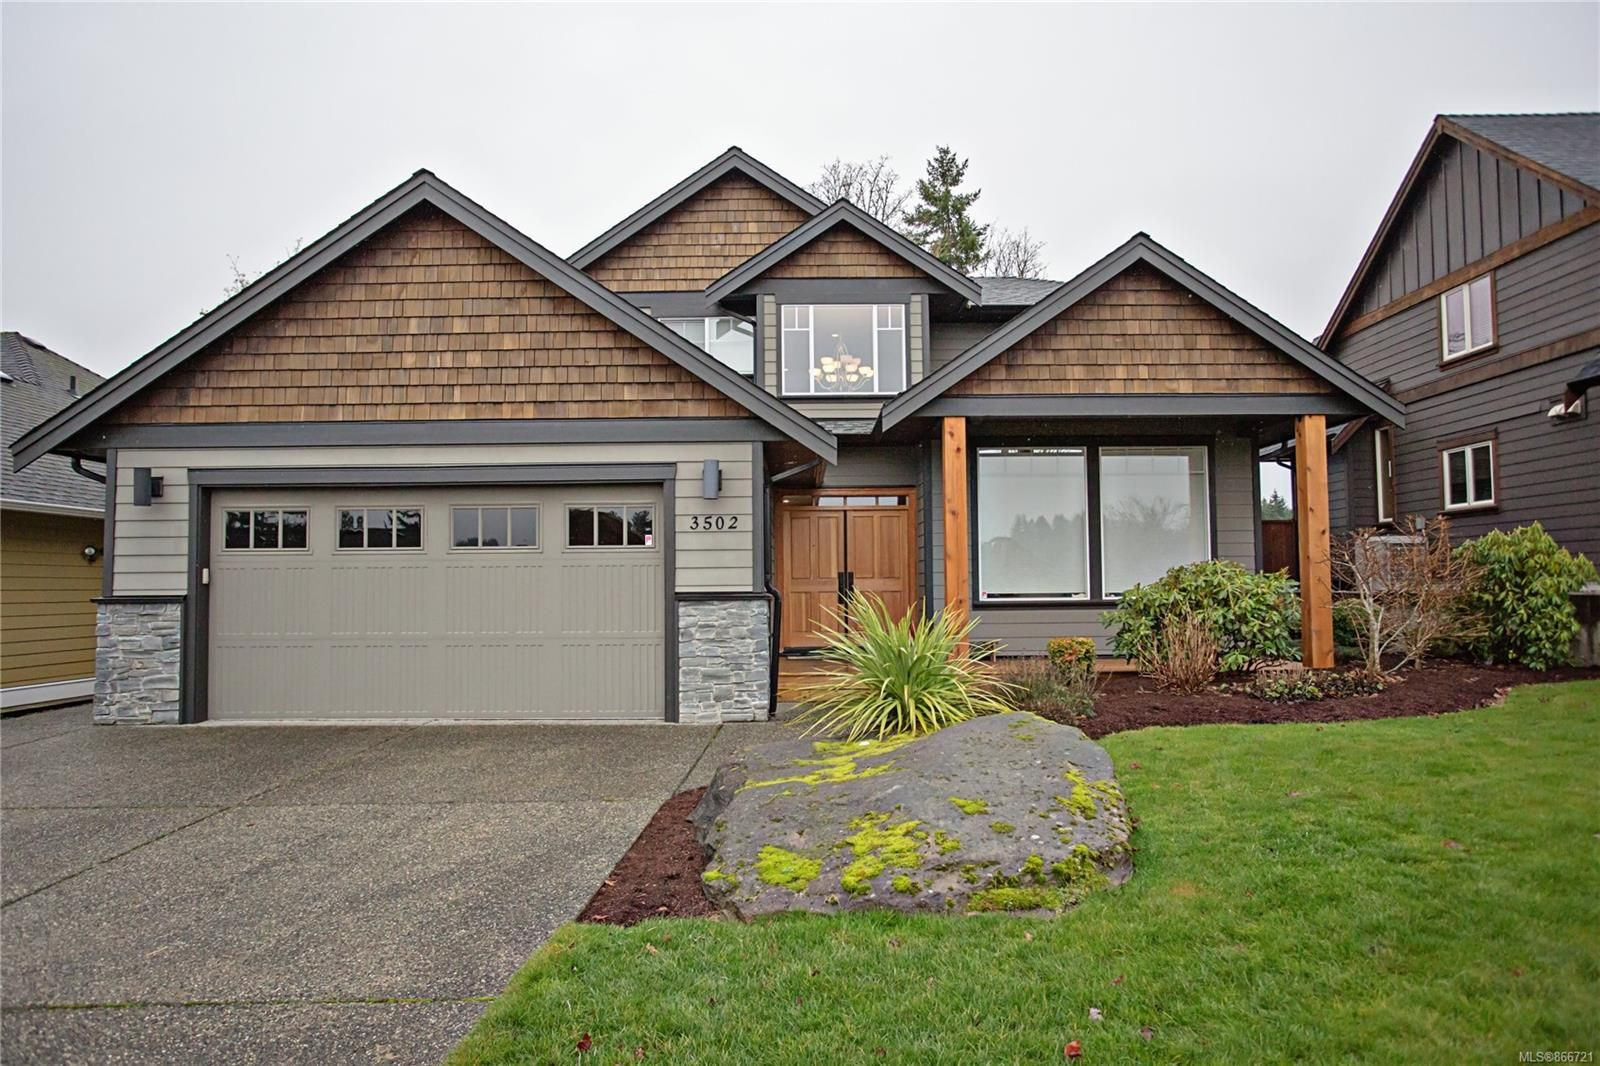 Main Photo: 3502 Castle Rock Dr in : Na North Jingle Pot House for sale (Nanaimo)  : MLS®# 866721